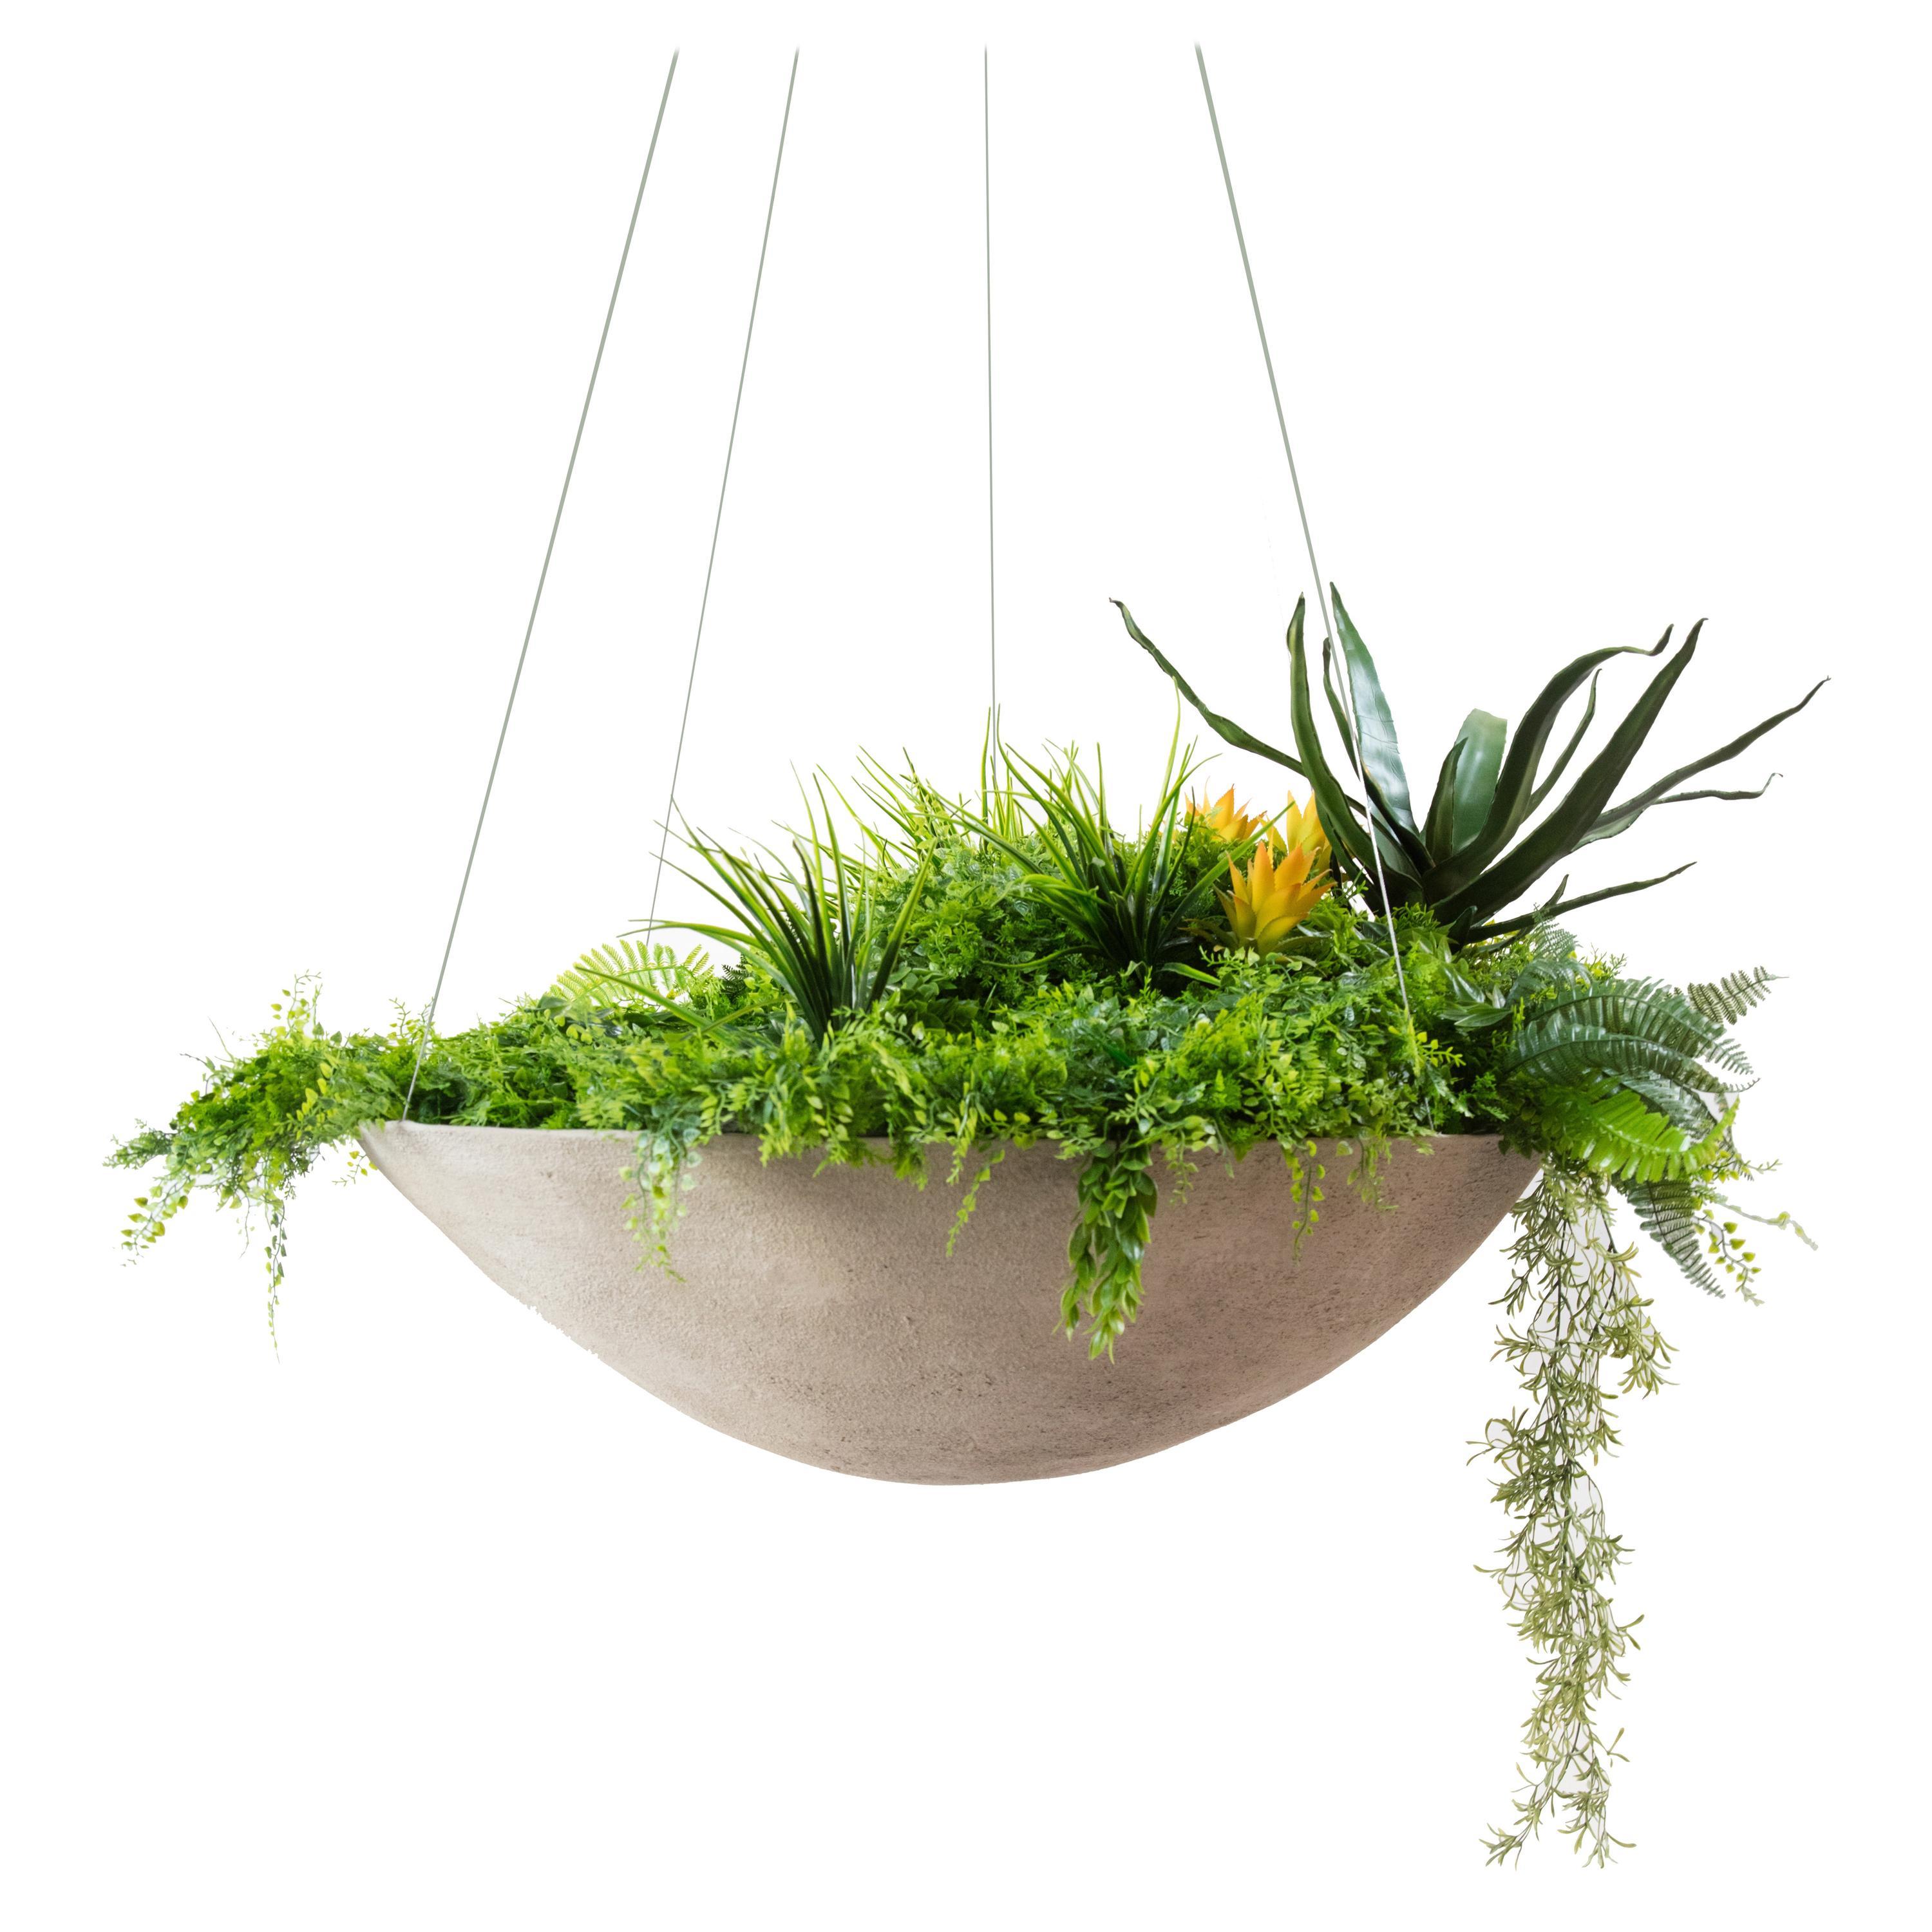 """Ukiyo Saucer, Concrete Planter by OPIARY (D26"""", H10"""")"""